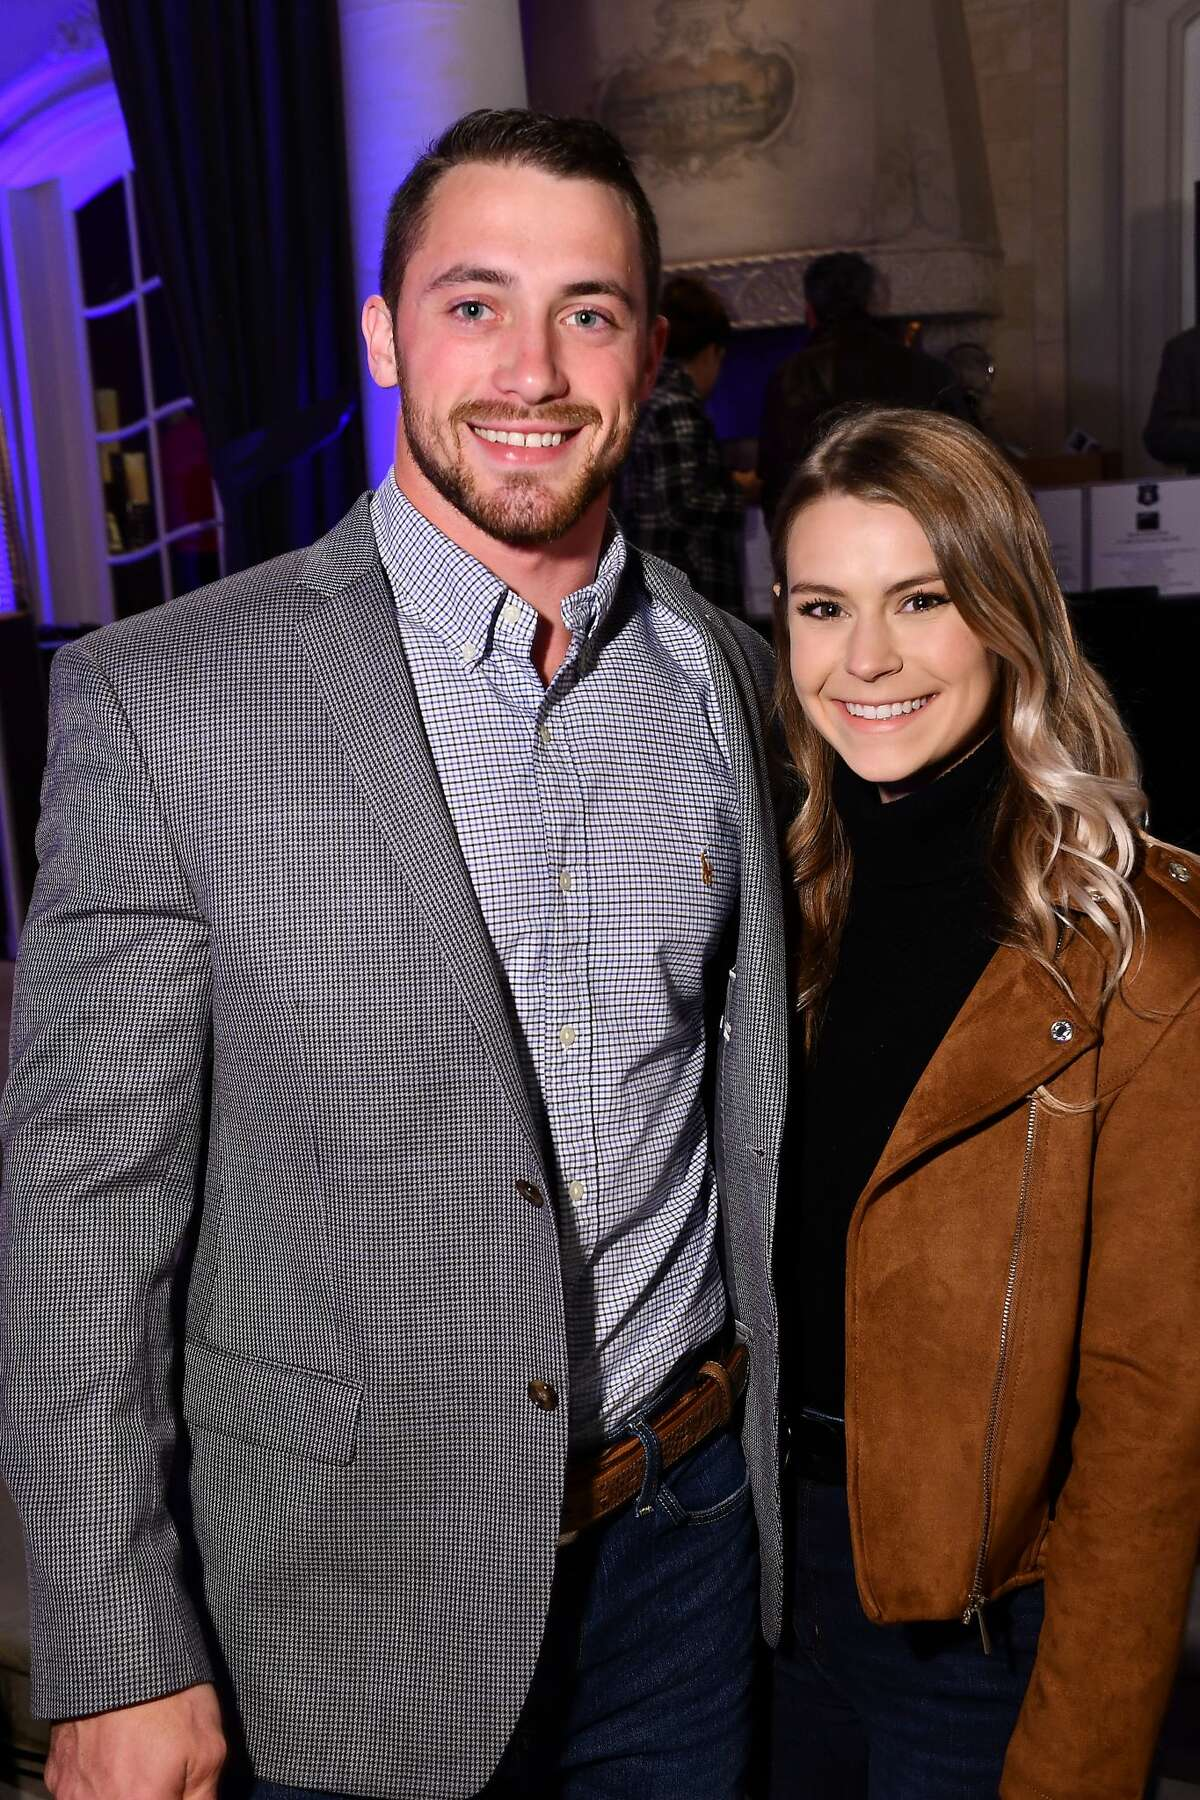 Bryce Plant and Kalie Dickason at the Houston Police Foundation's 12th Annual True Blue Gala at the home of Tilman Fertitta Friday Nov. 8,2019.(Dave Rossman photo)